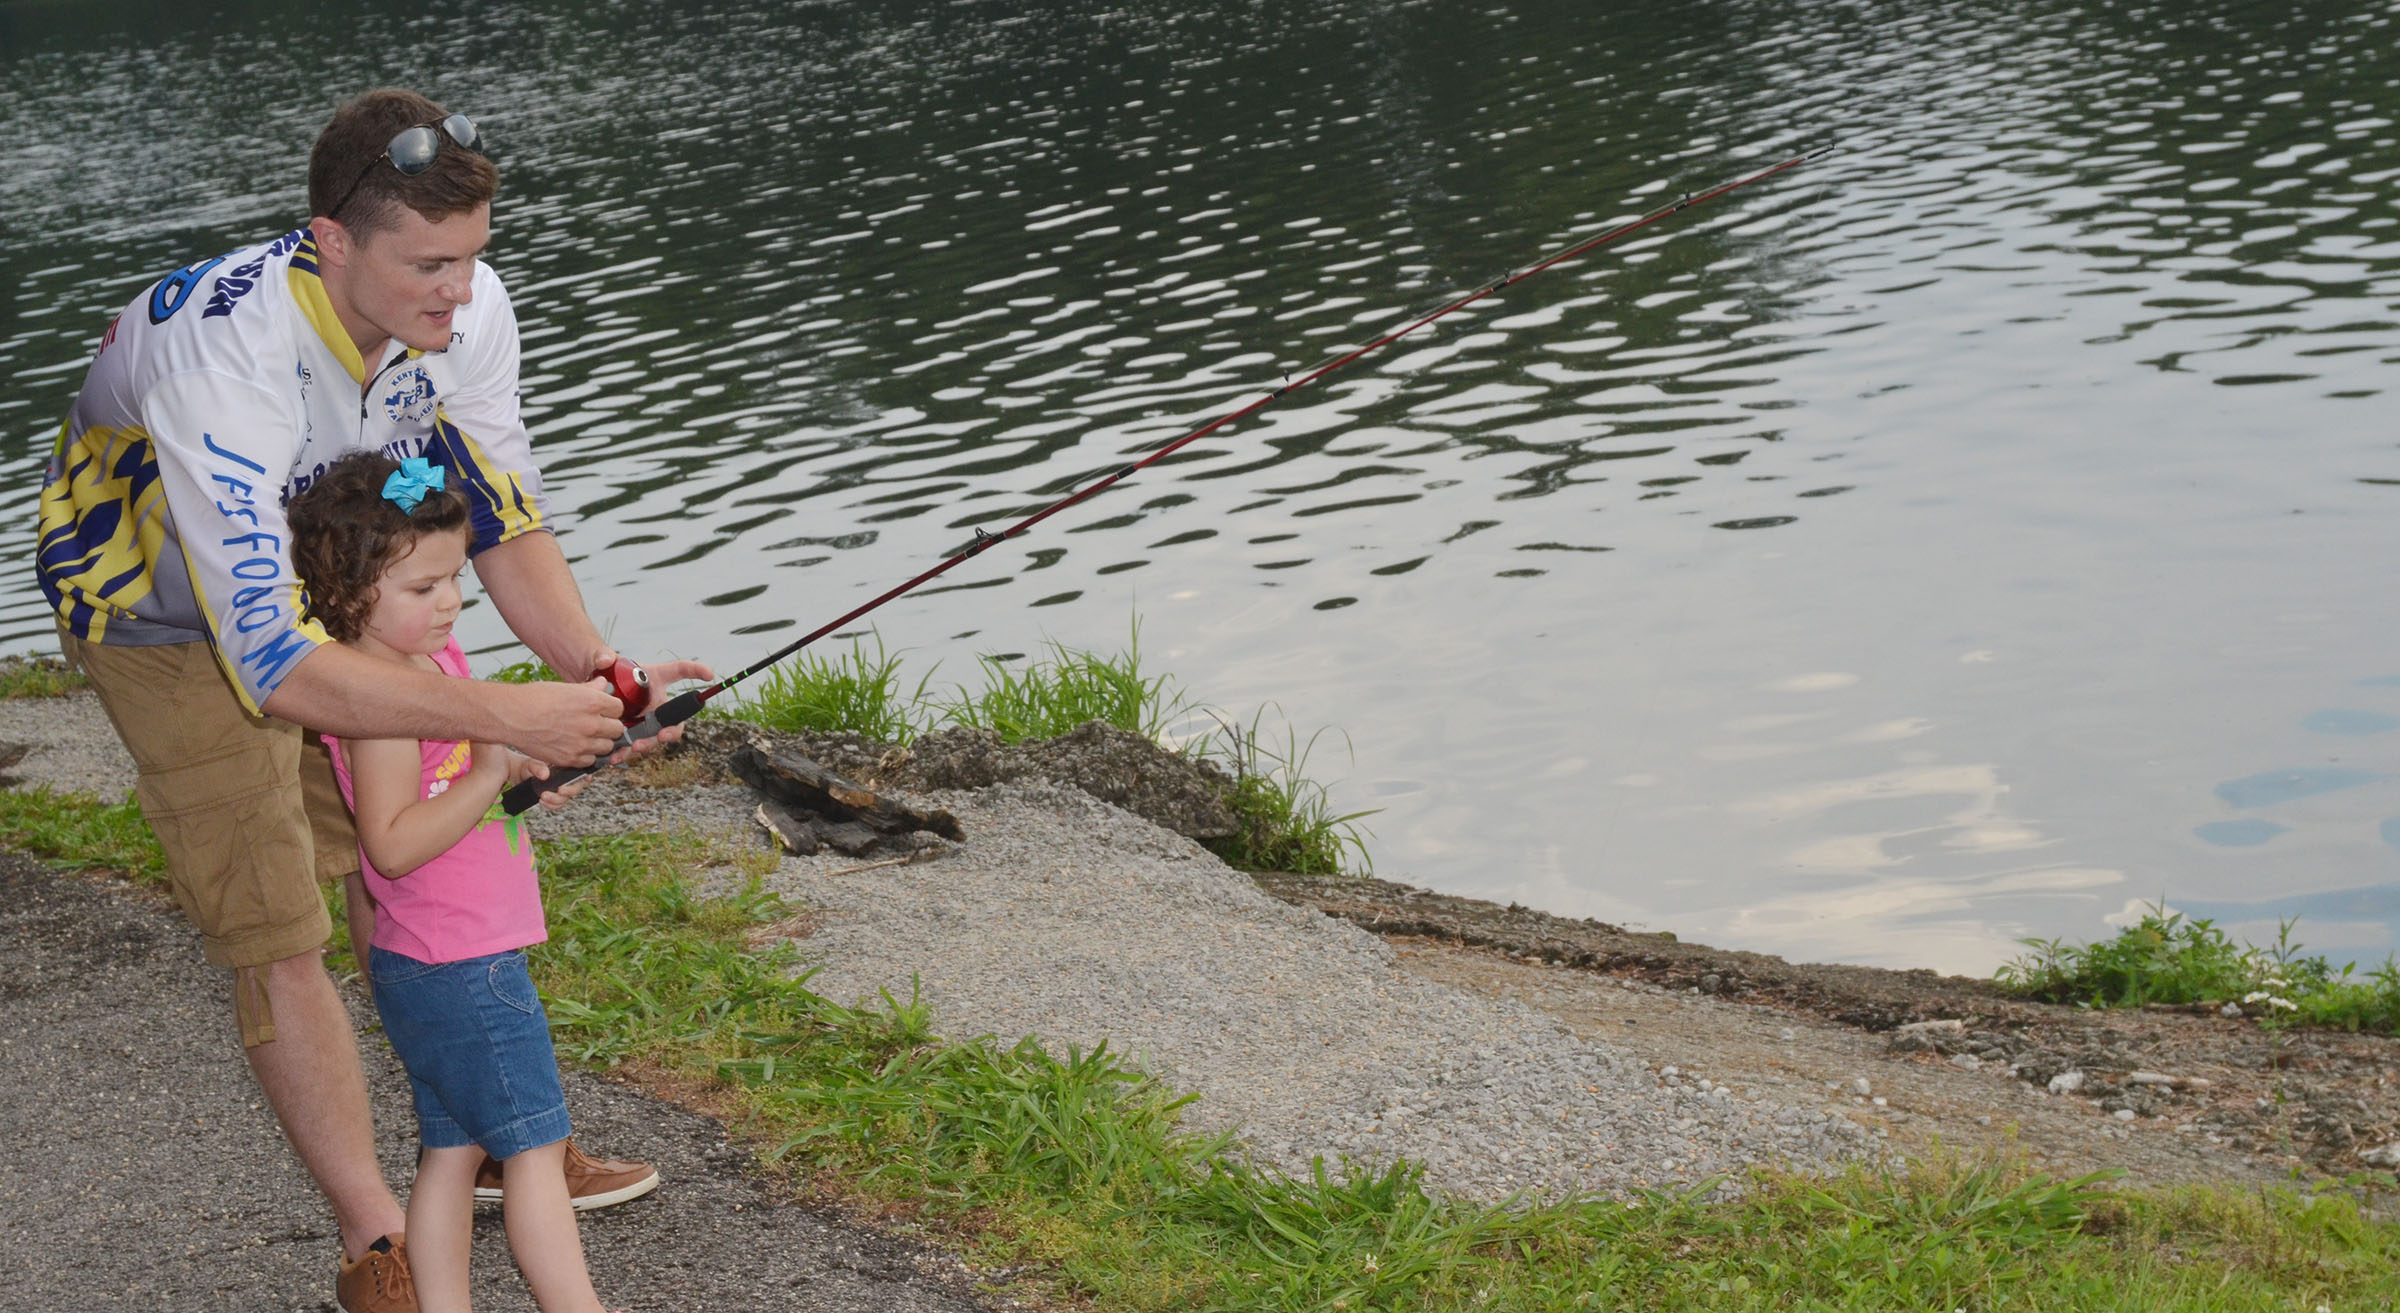 CHS fishing team member Bryce Richardson helps Ava Fields learn to cast.